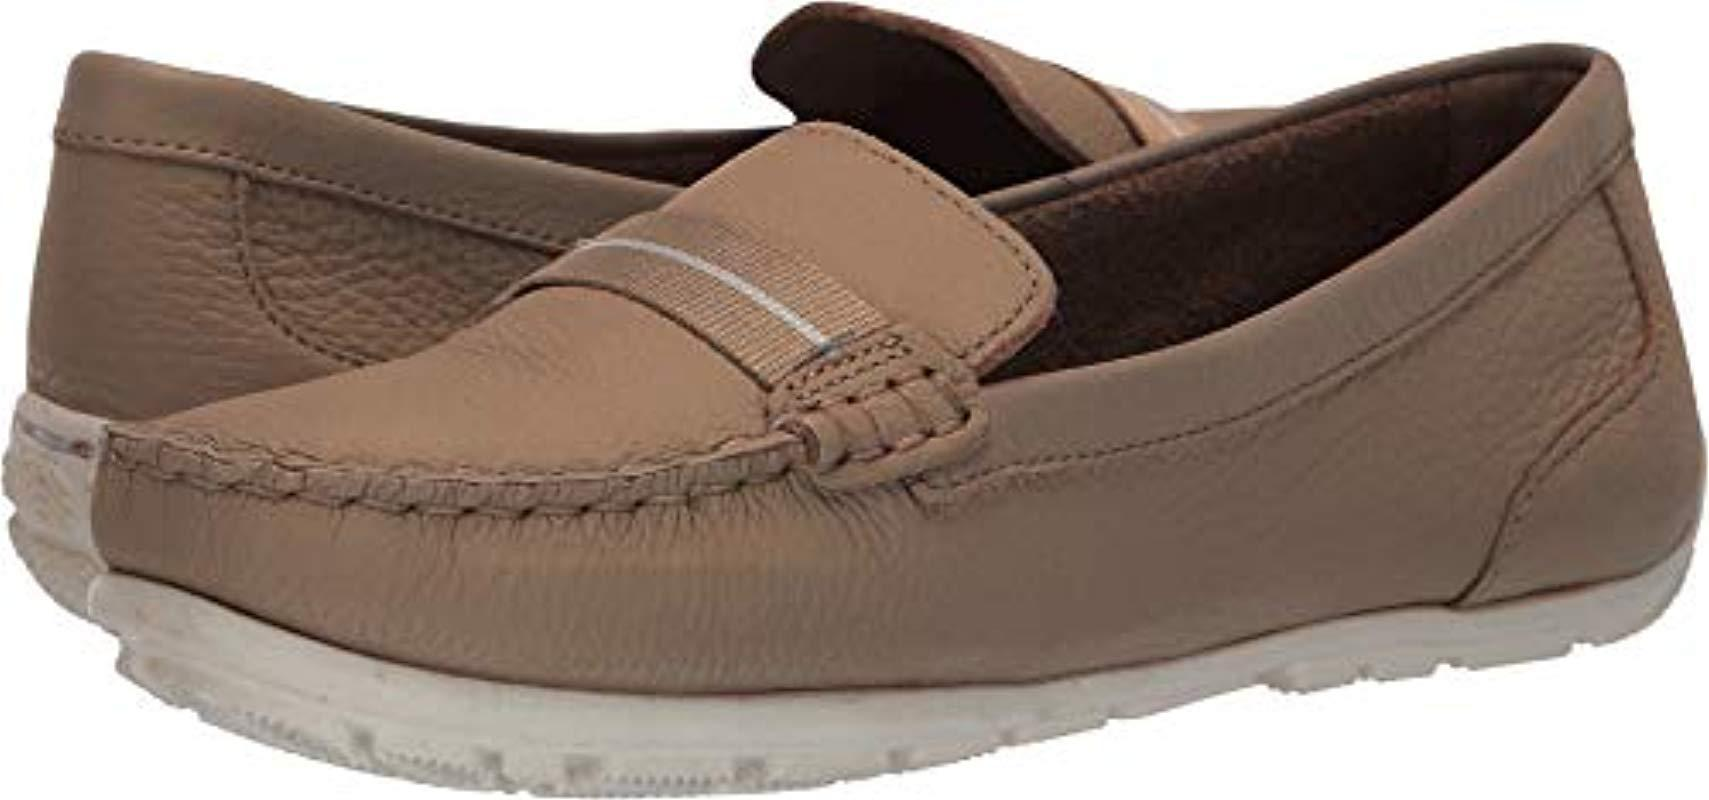 f61d2d244c8 Lyst - Clarks Dameo Vine Driving Style Loafer in White